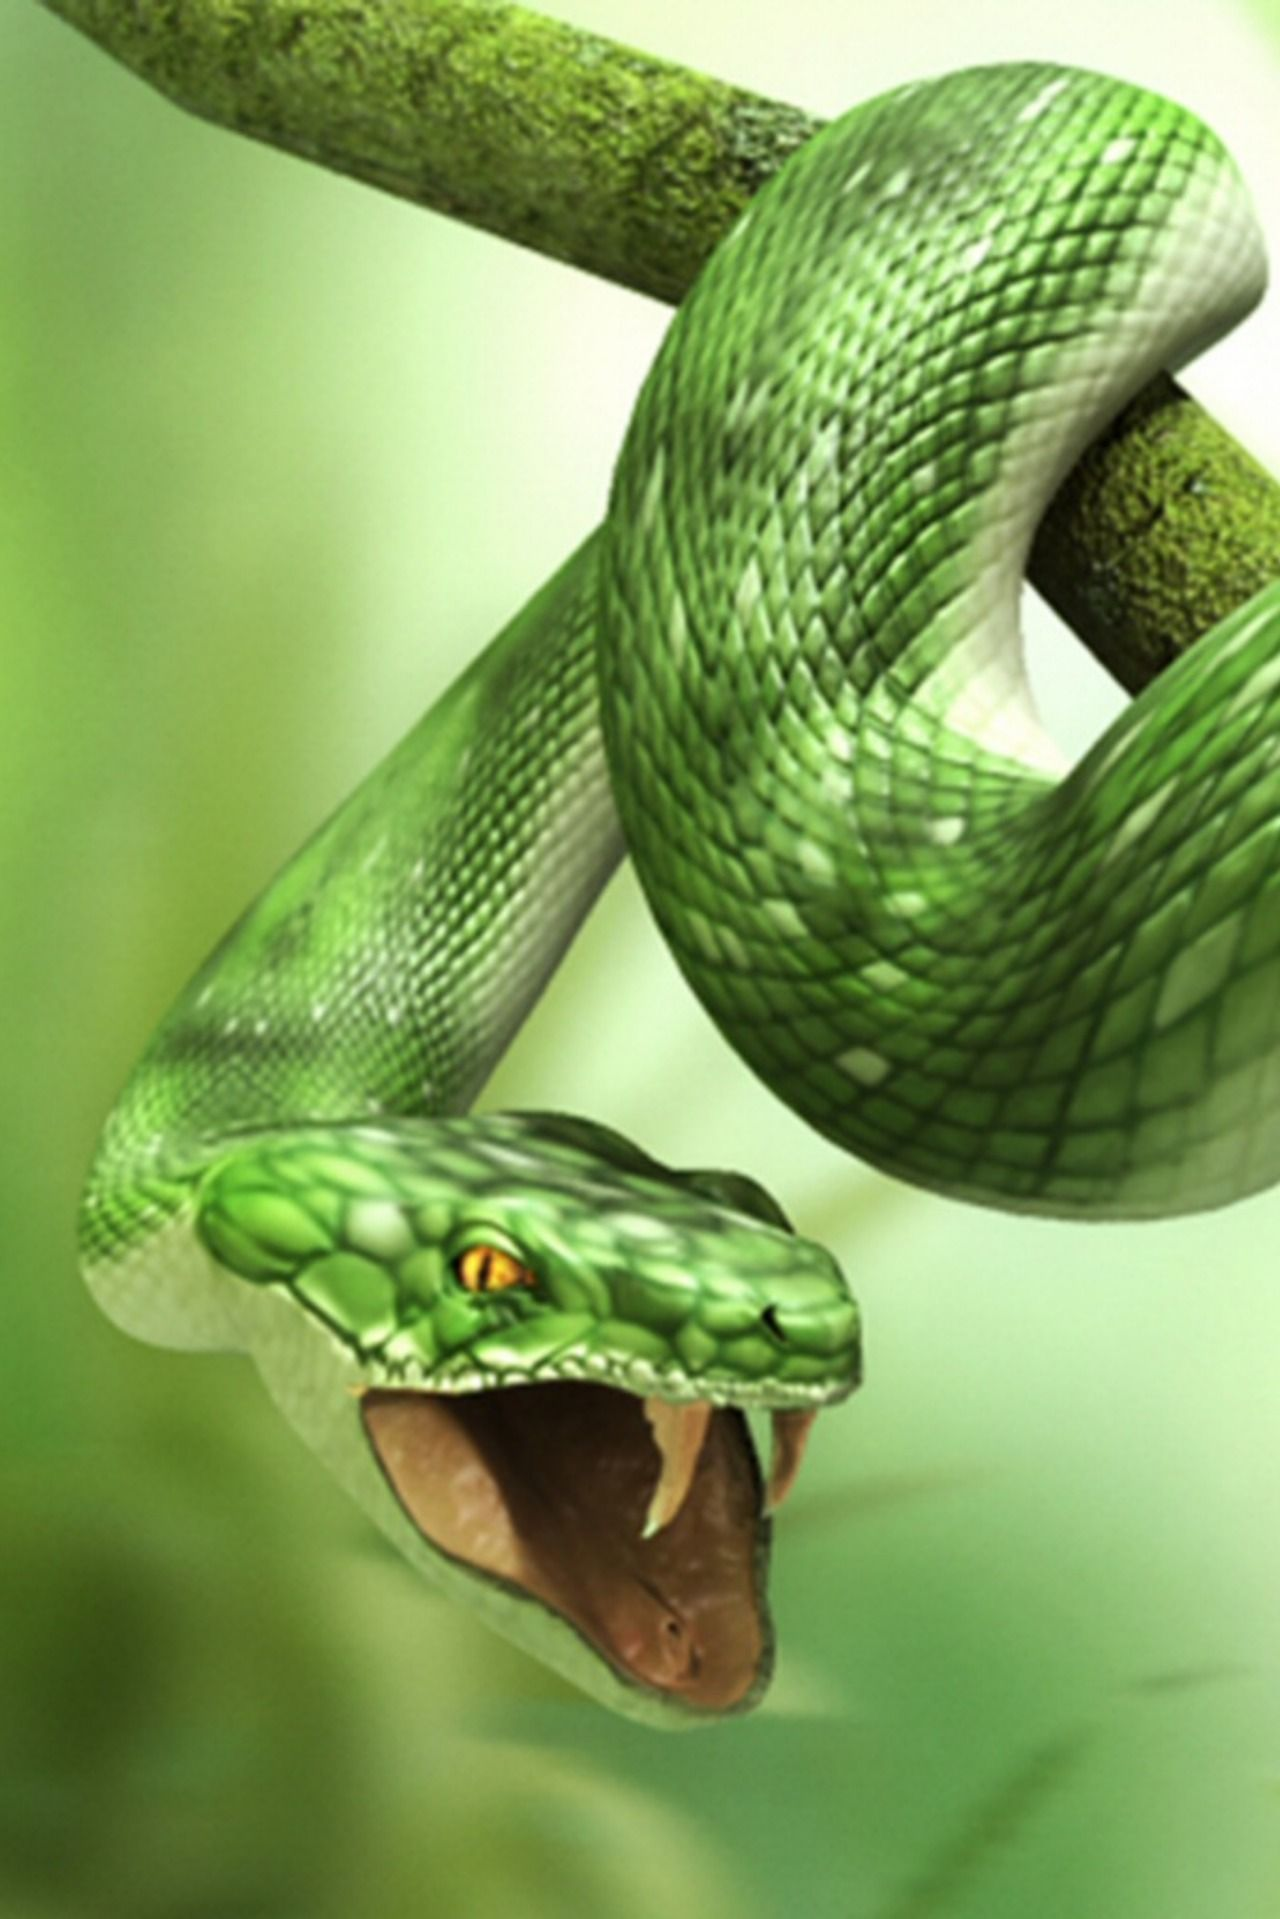 Pin By Greg Indica On Reptiles And Amphibians Snake Snake Wallpaper 3d Wallpaper For Mobile